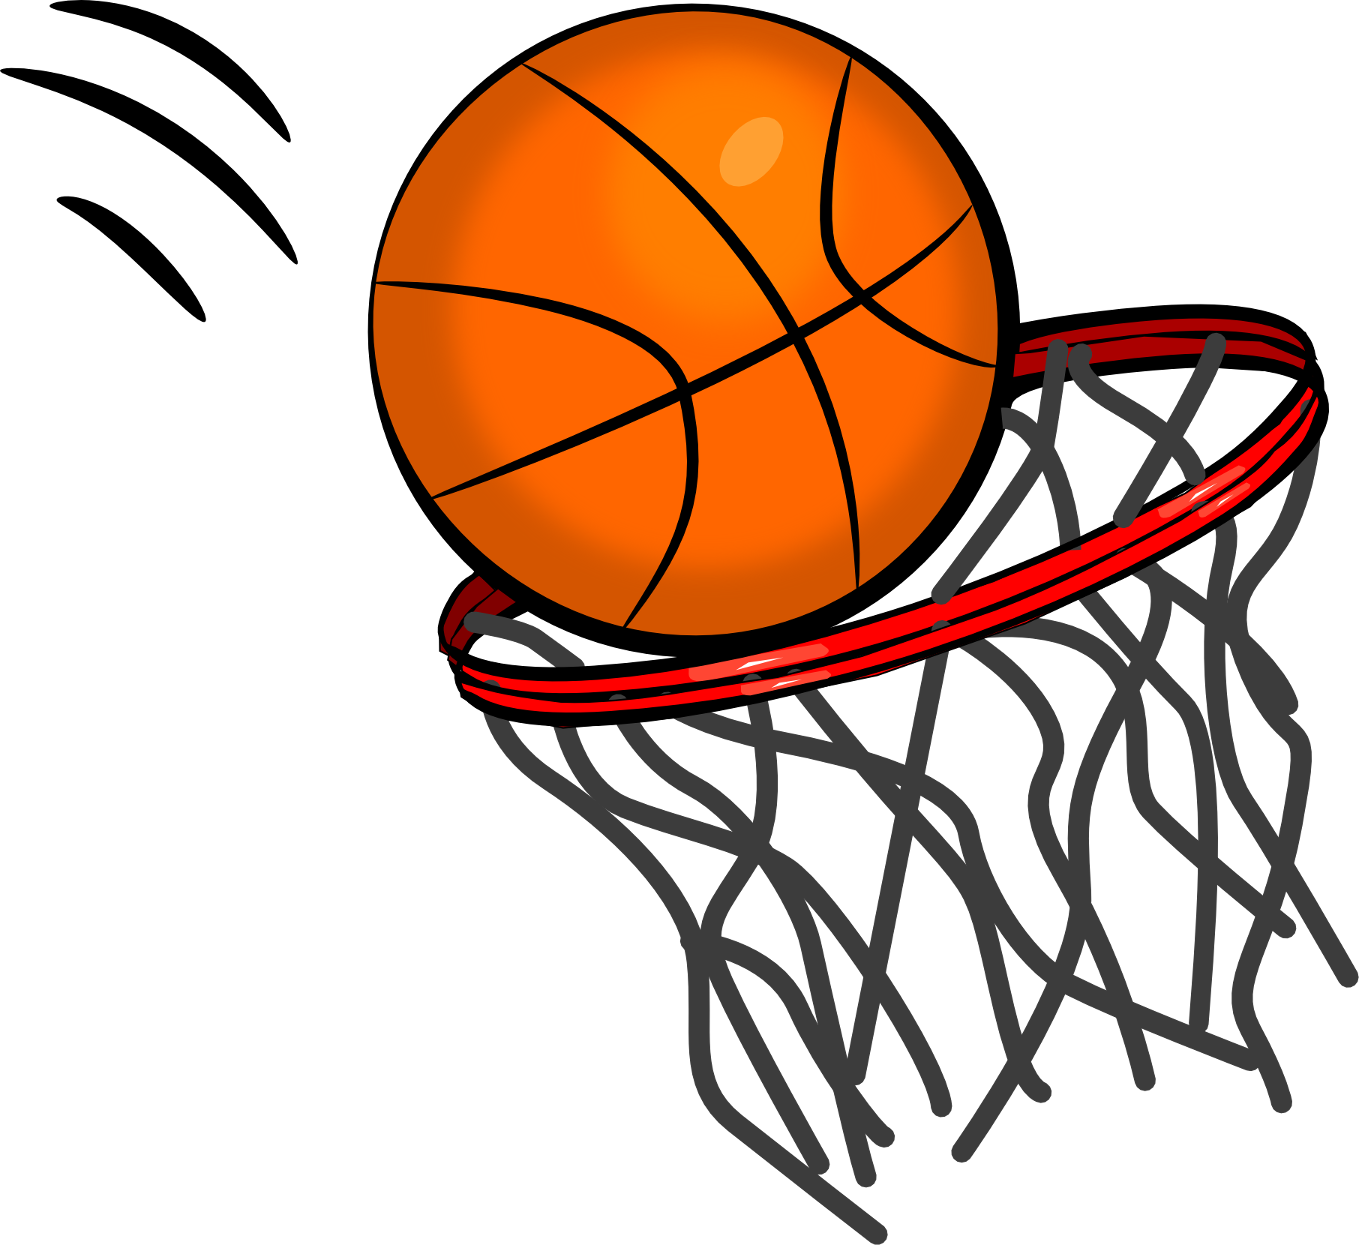 basketball net clipart free - photo #2